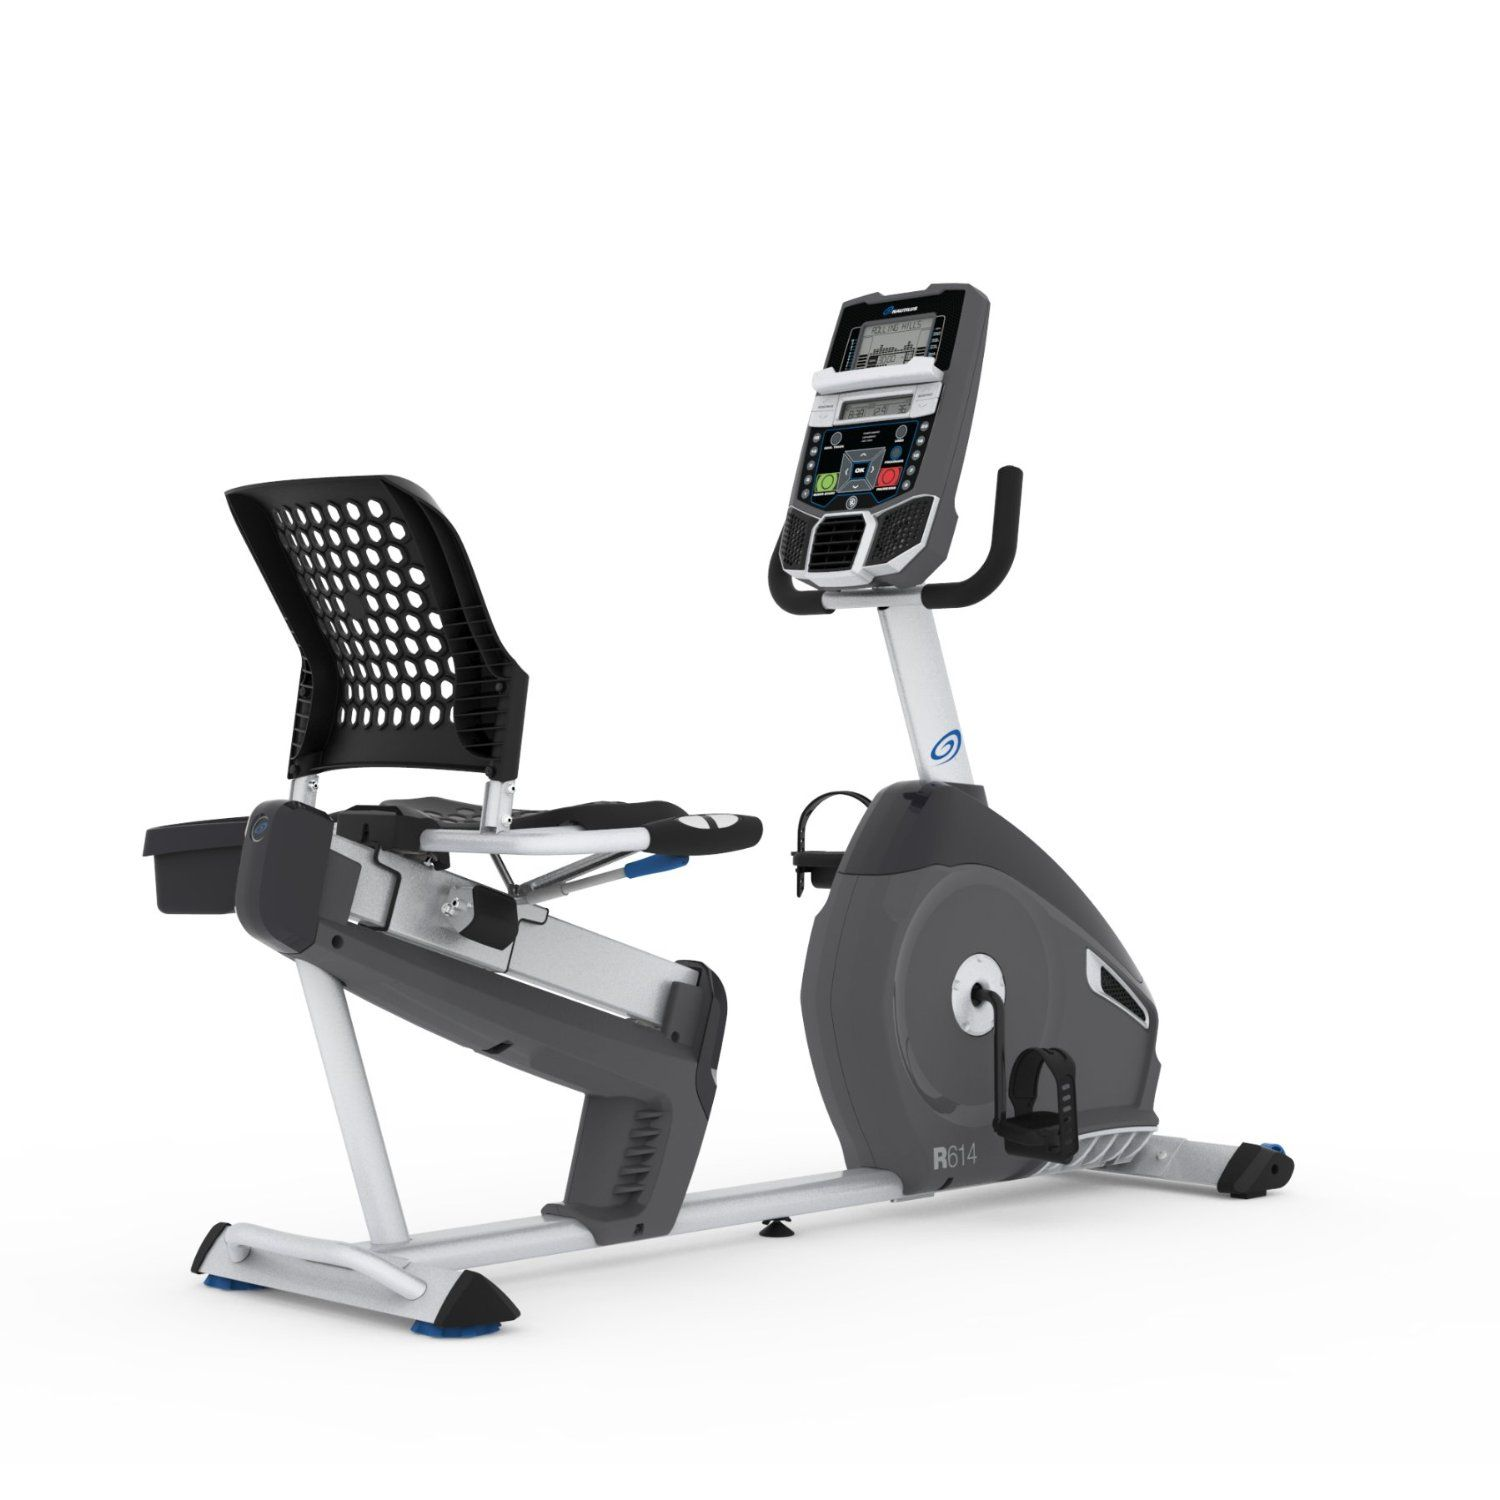 Best Recumbent Exercise Bike Reviews In 2020 Recumbent Bike